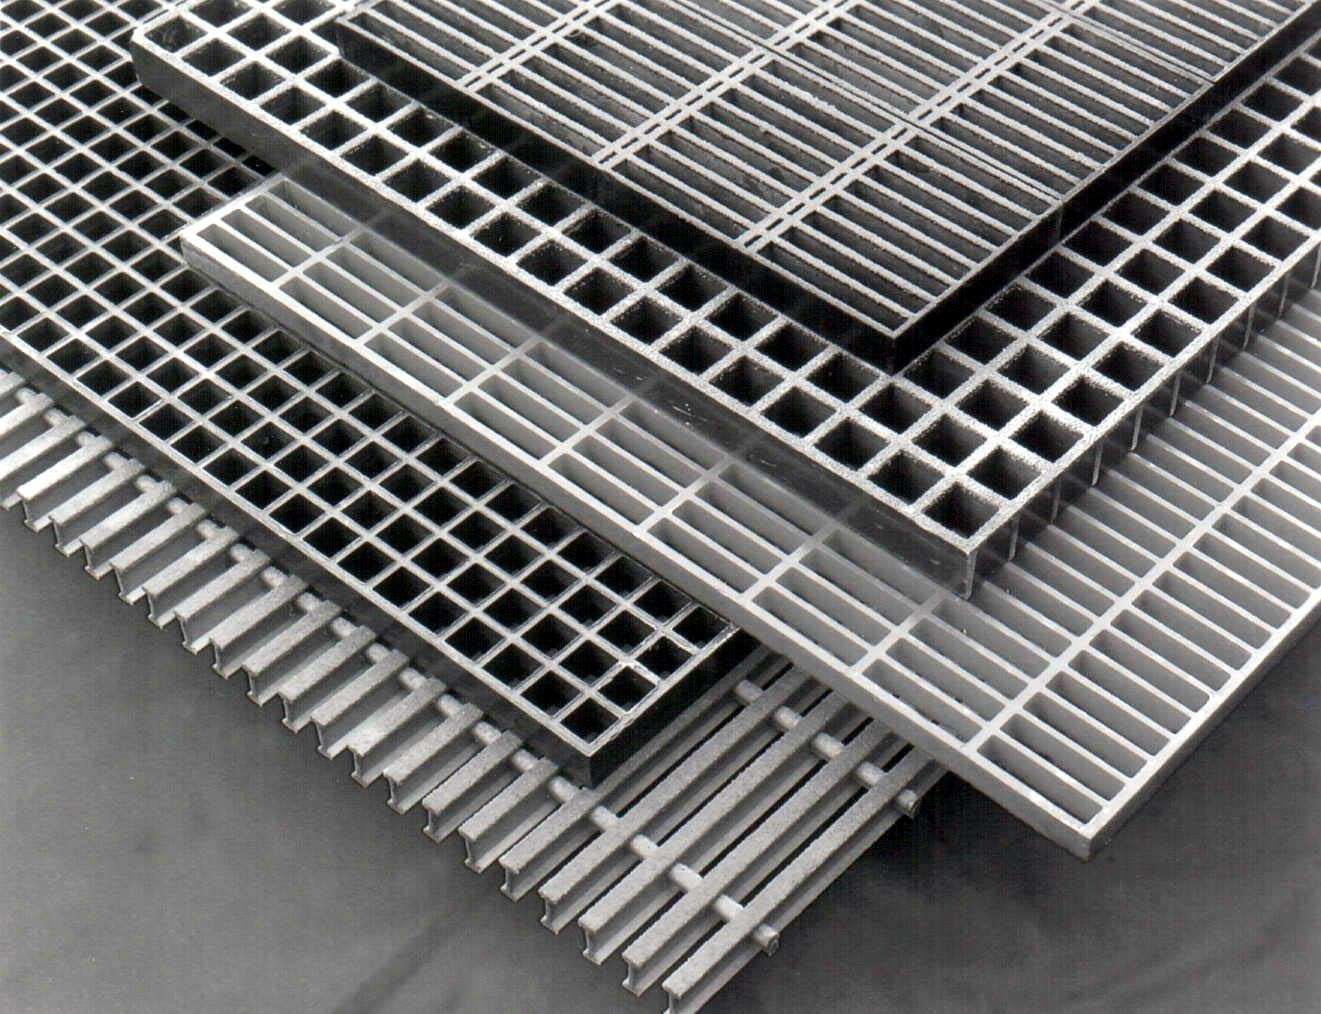 Steel Gratings Exporters, India | ID - 1378800